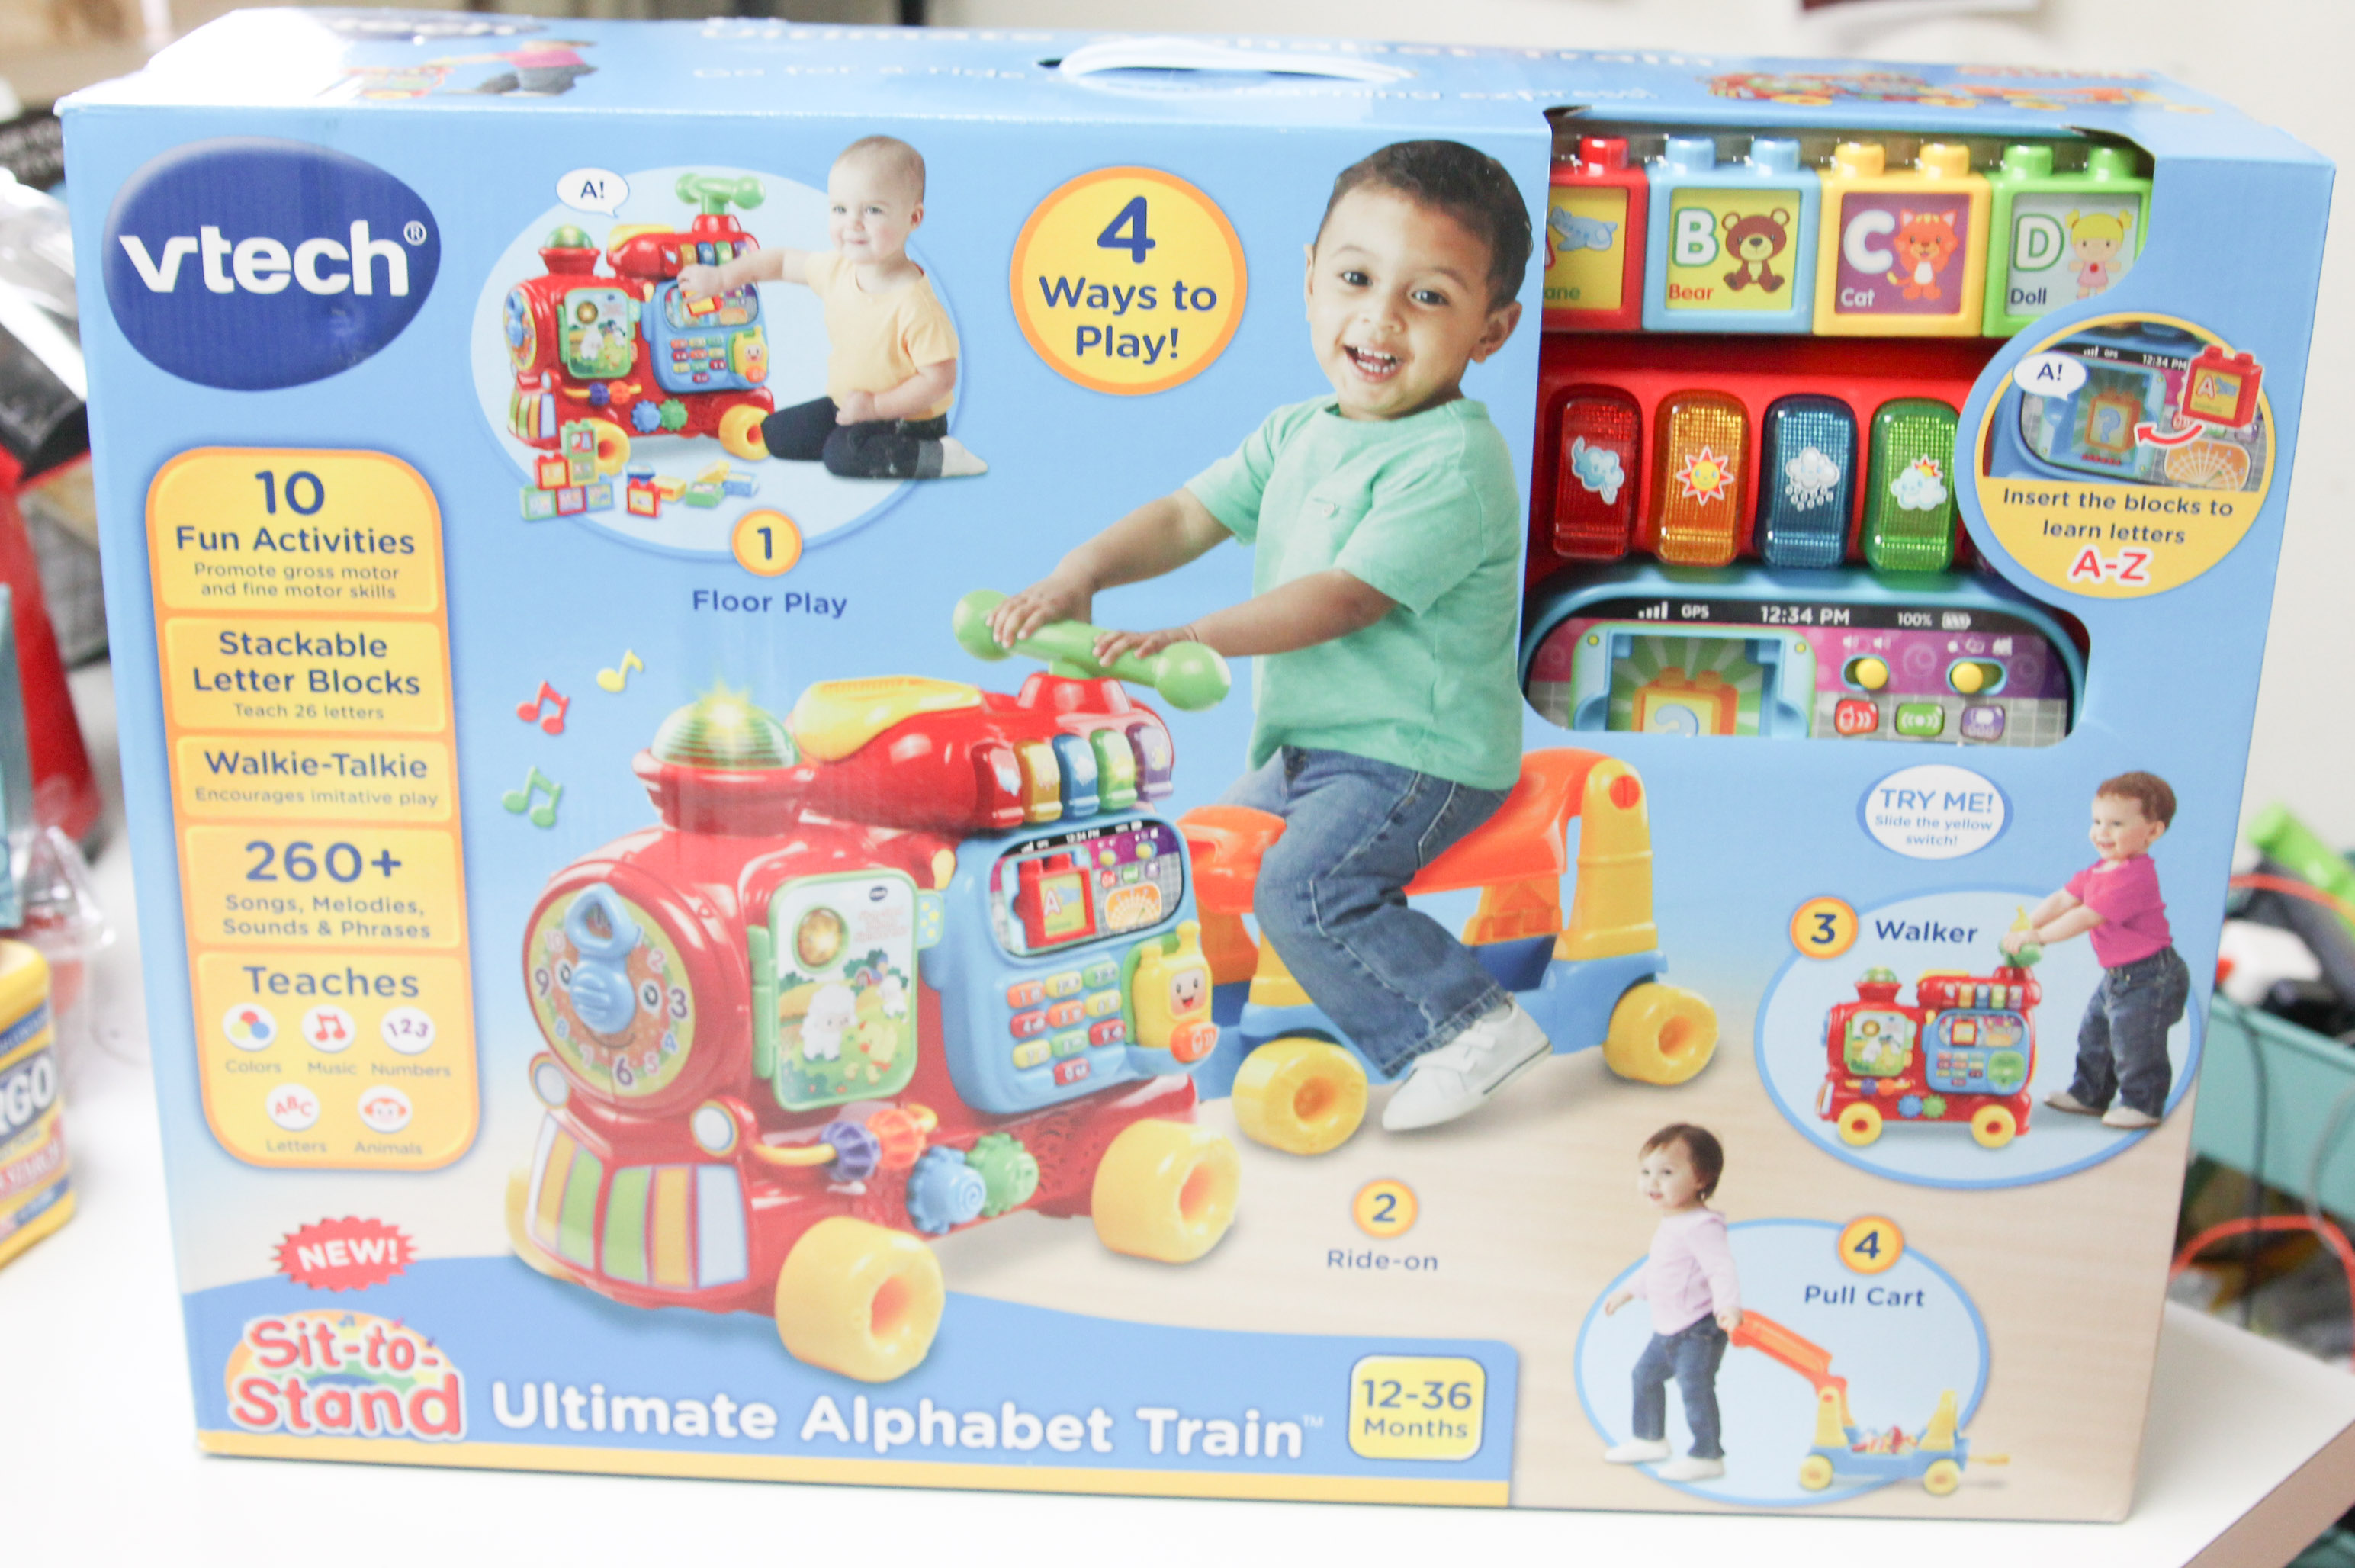 Get on the Learning Train with VTech Sit to Stand Ultimate